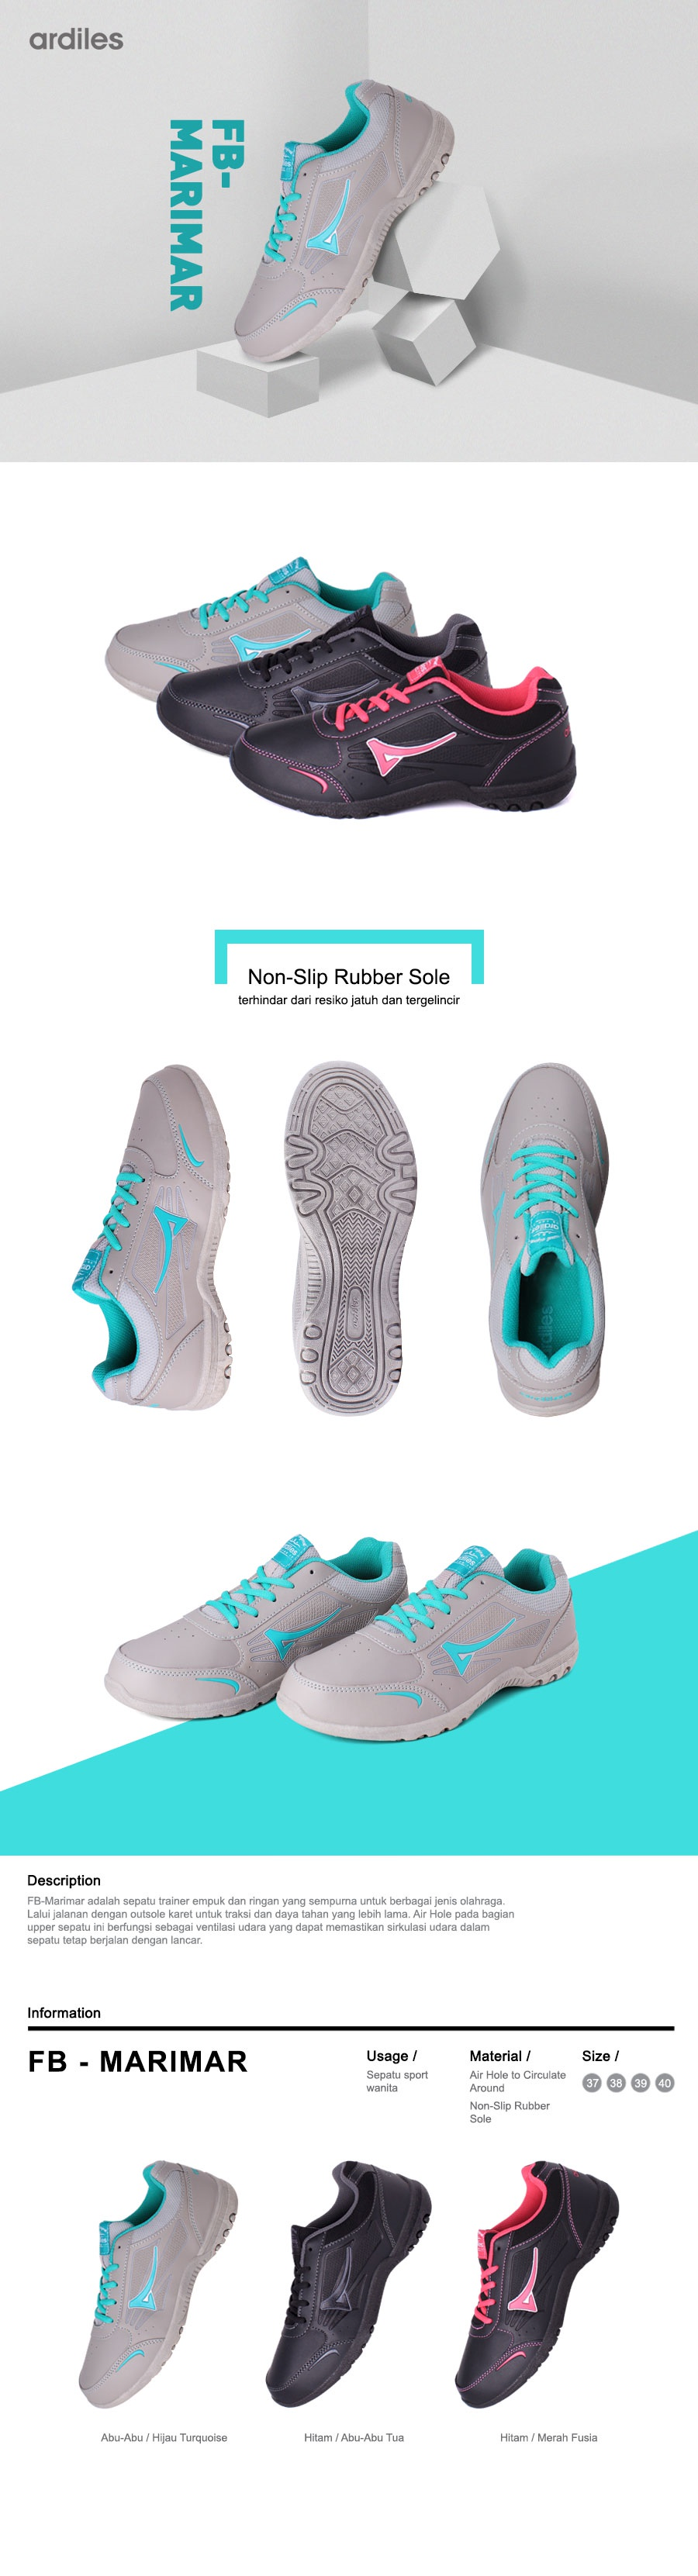 Every Need Want Day Ardiles Women Glamour Sepatu Slip On Abu Muda 40 Clearance Sale Update Style Shoes Men And Kids Sport